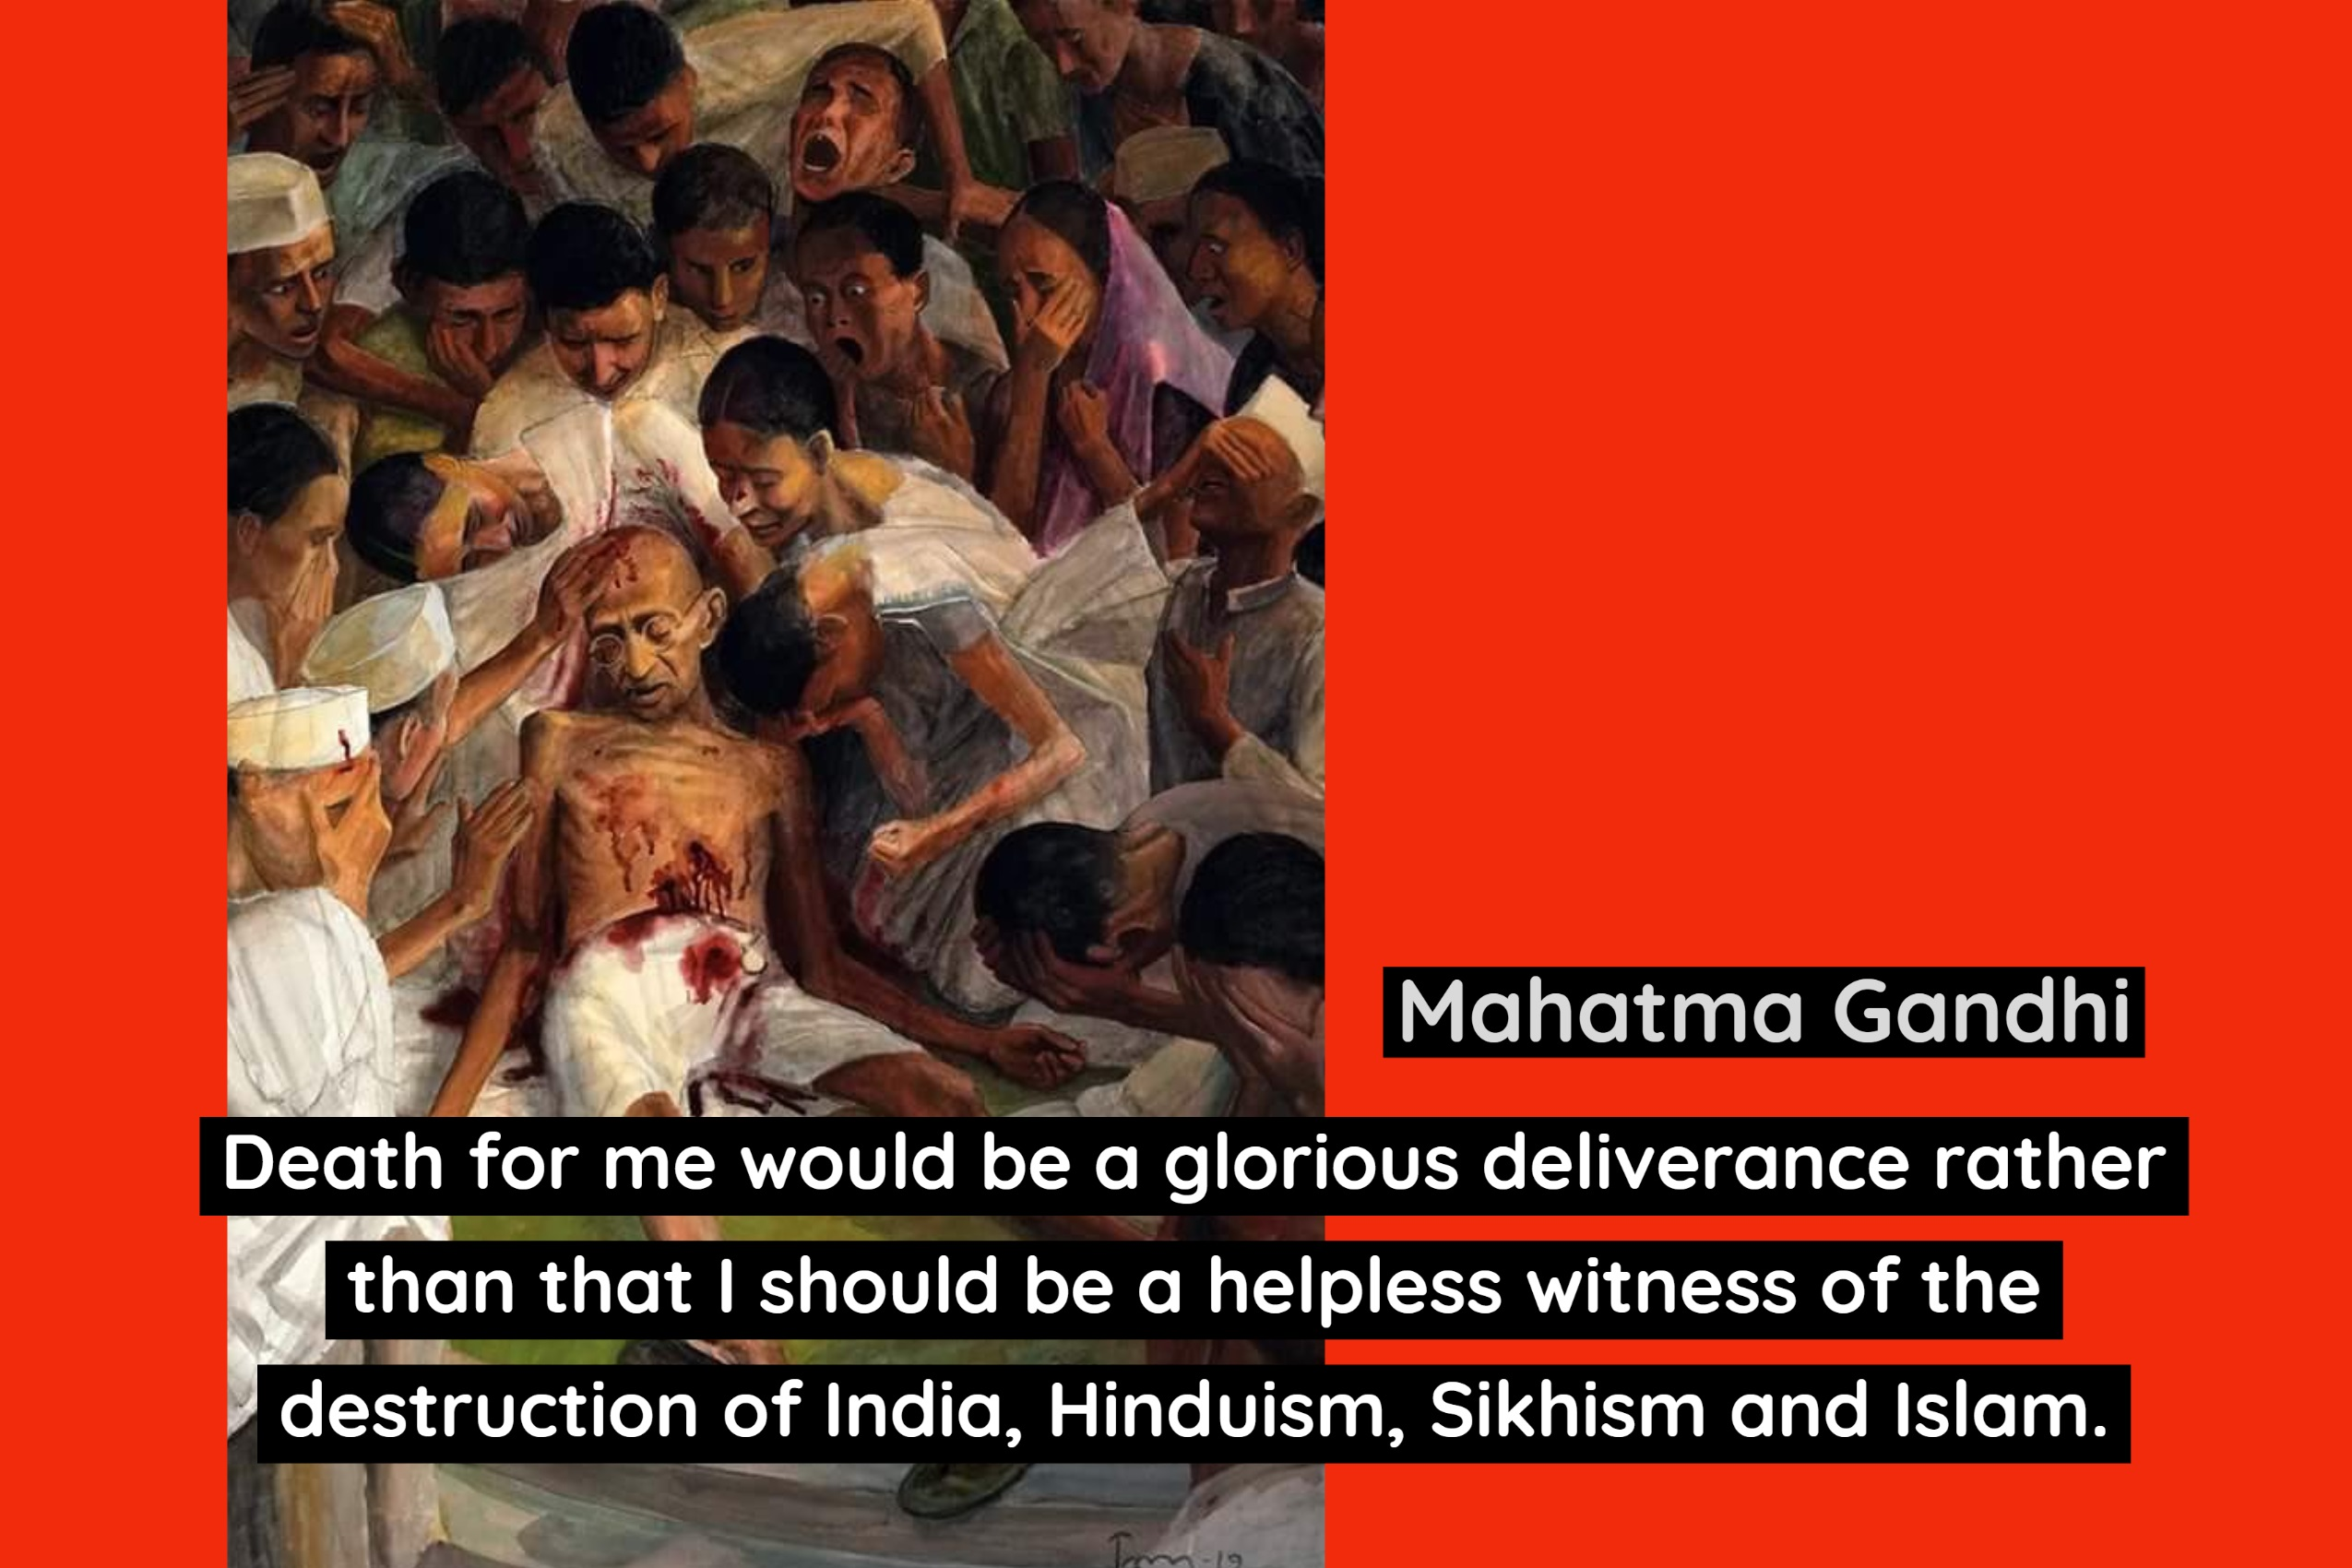 "Mahatma Gandhi Death for me would be a glorious deliverance rather 7'57""; mi». than that I should be a helpless witness of the 'FIIH \vv; destruction of India, Hinduism, Sikhism and Islam. M's-""s, A https://inspirational.ly"